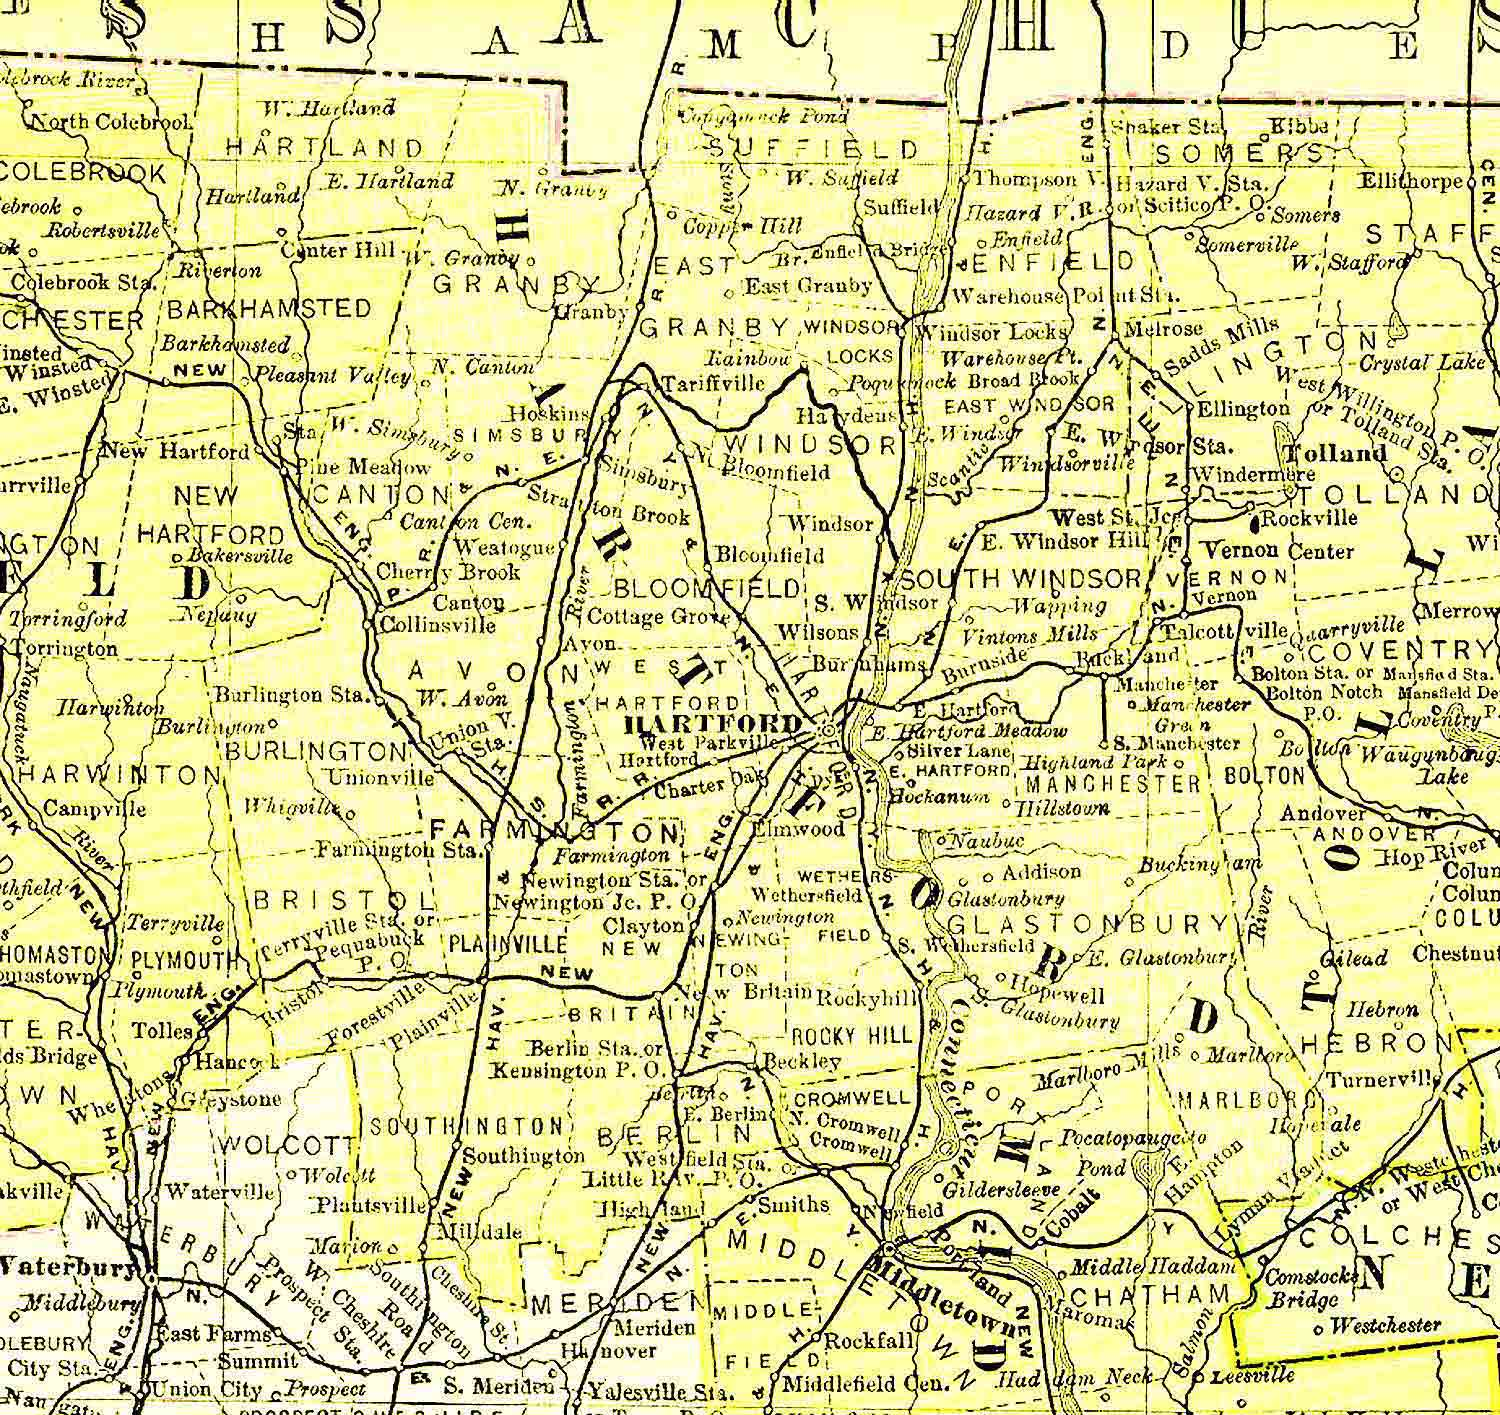 Combs Ampc Families Of Hartford County Connecticut